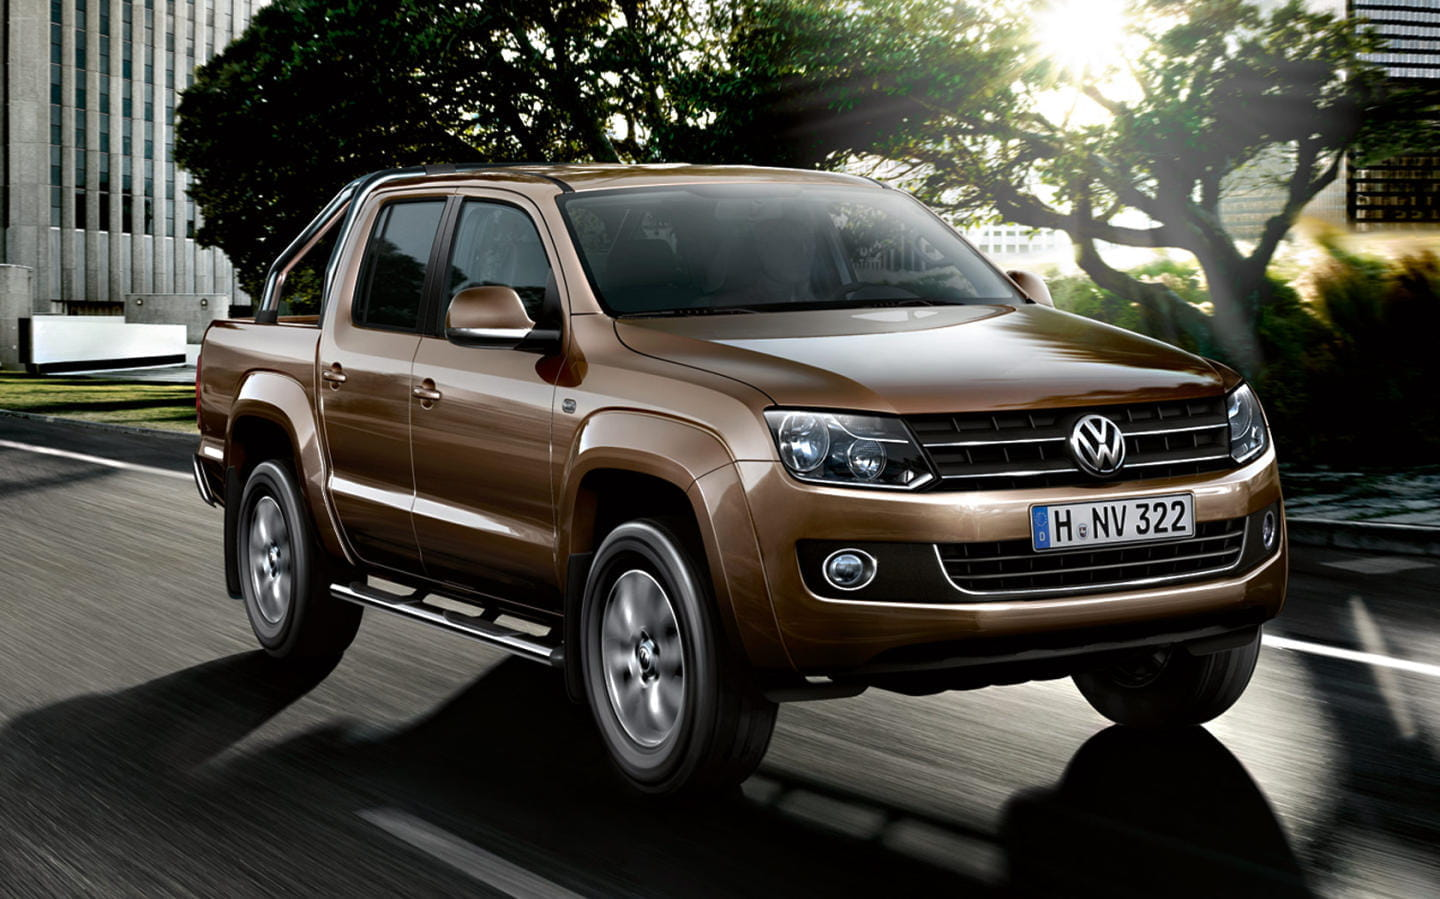 volkswagen amarok pick up 4x4 precios prueba ficha t cnica fotos y noticias diariomotor. Black Bedroom Furniture Sets. Home Design Ideas